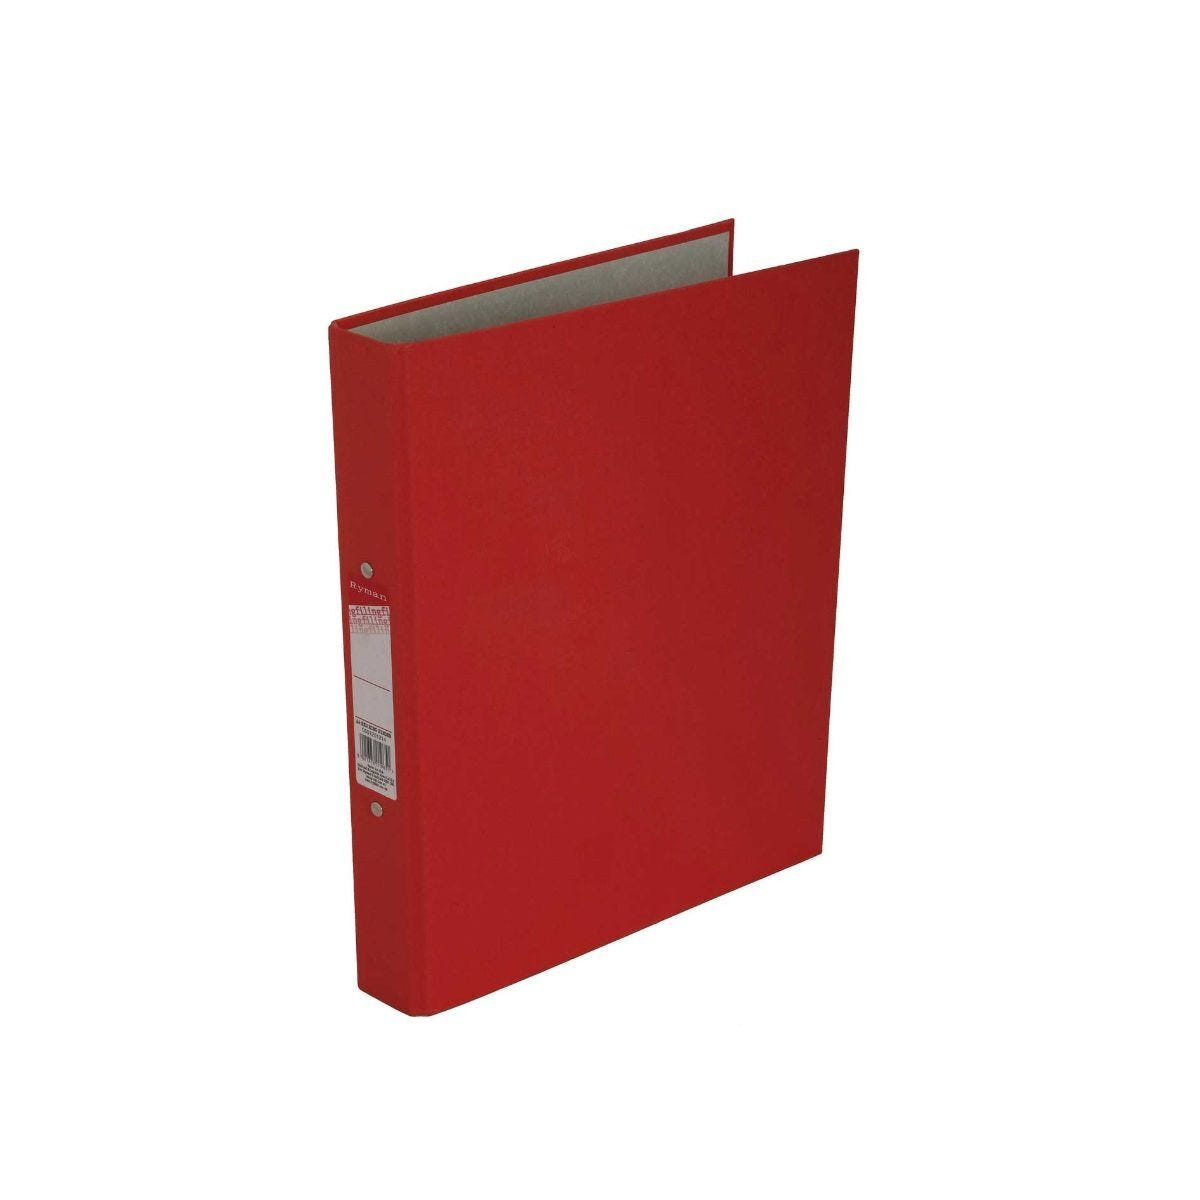 Ryman Colour Ringbinder A4 2-Ring Pack of 10 Red